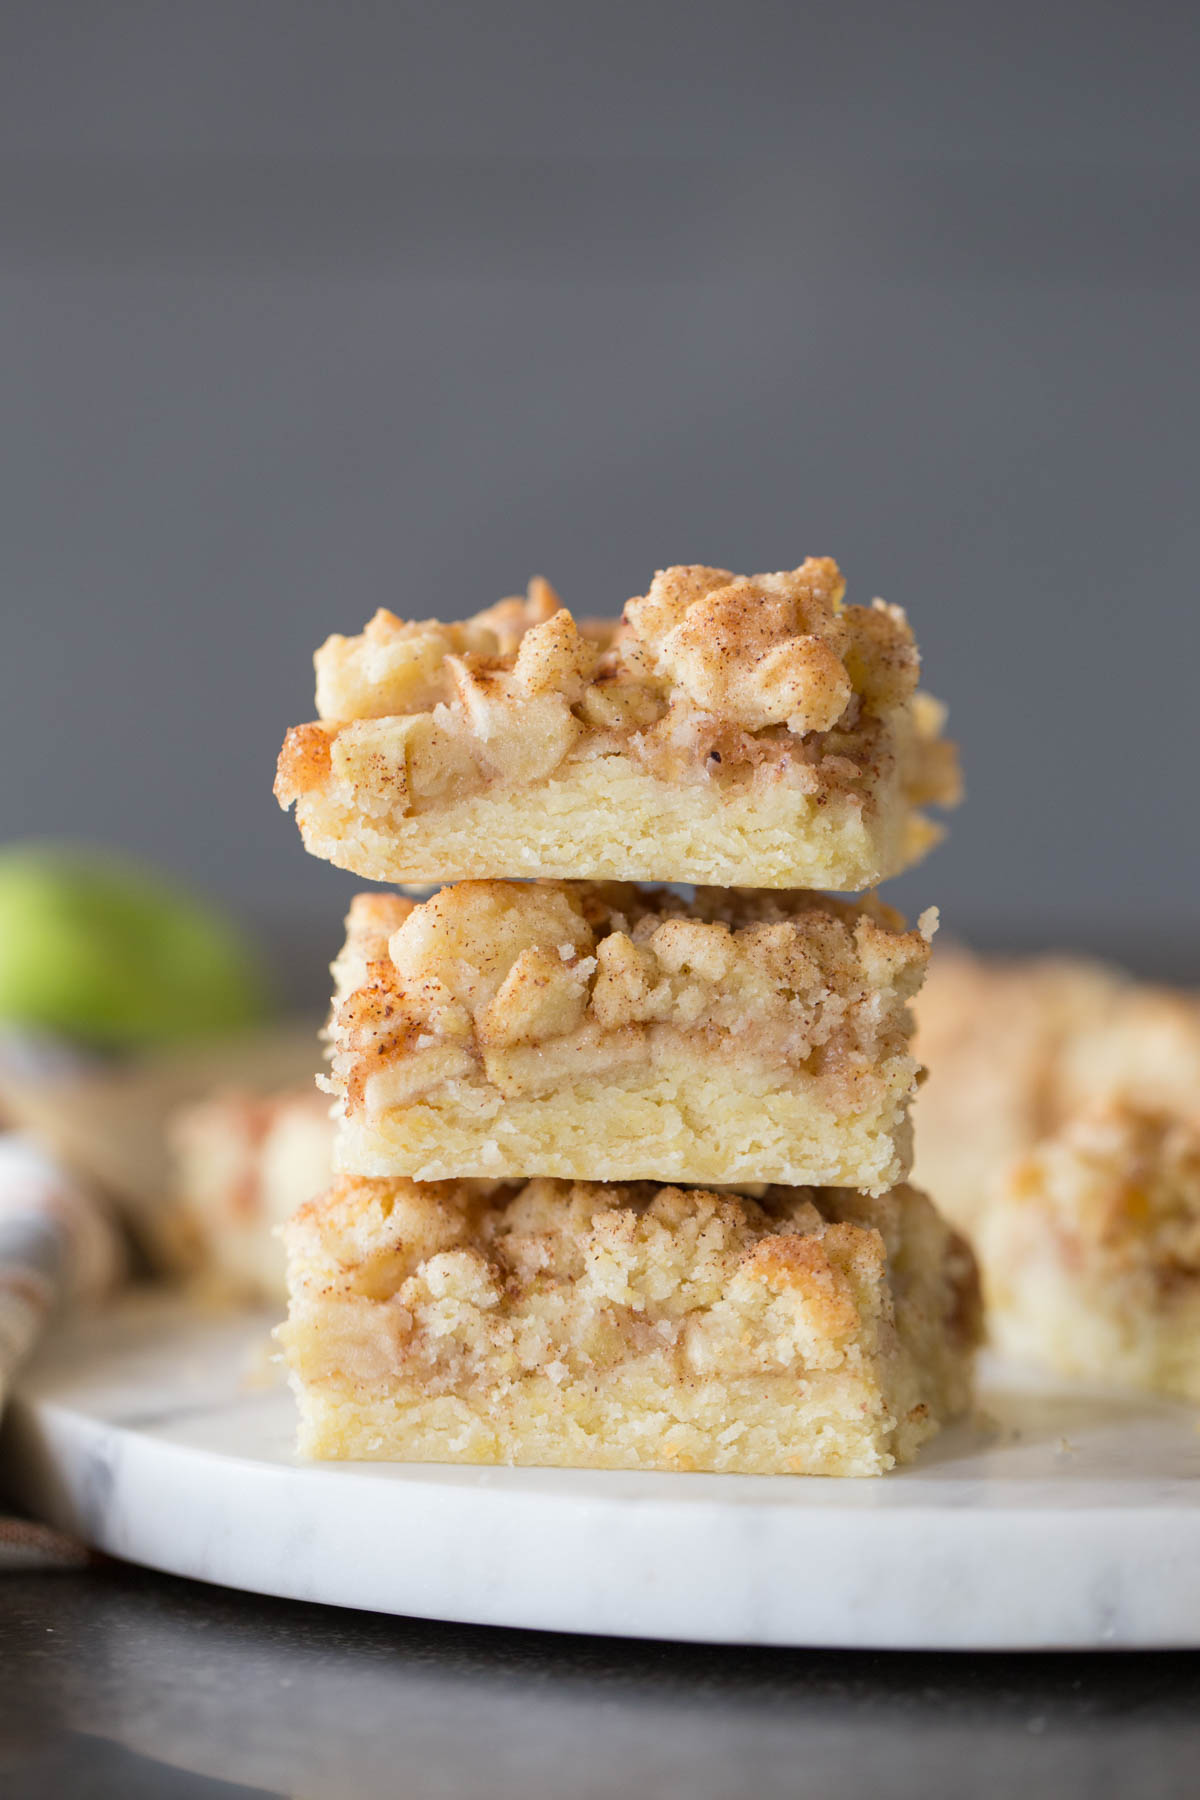 Three Apple Pie Crumb Bars stacked on top of each other.